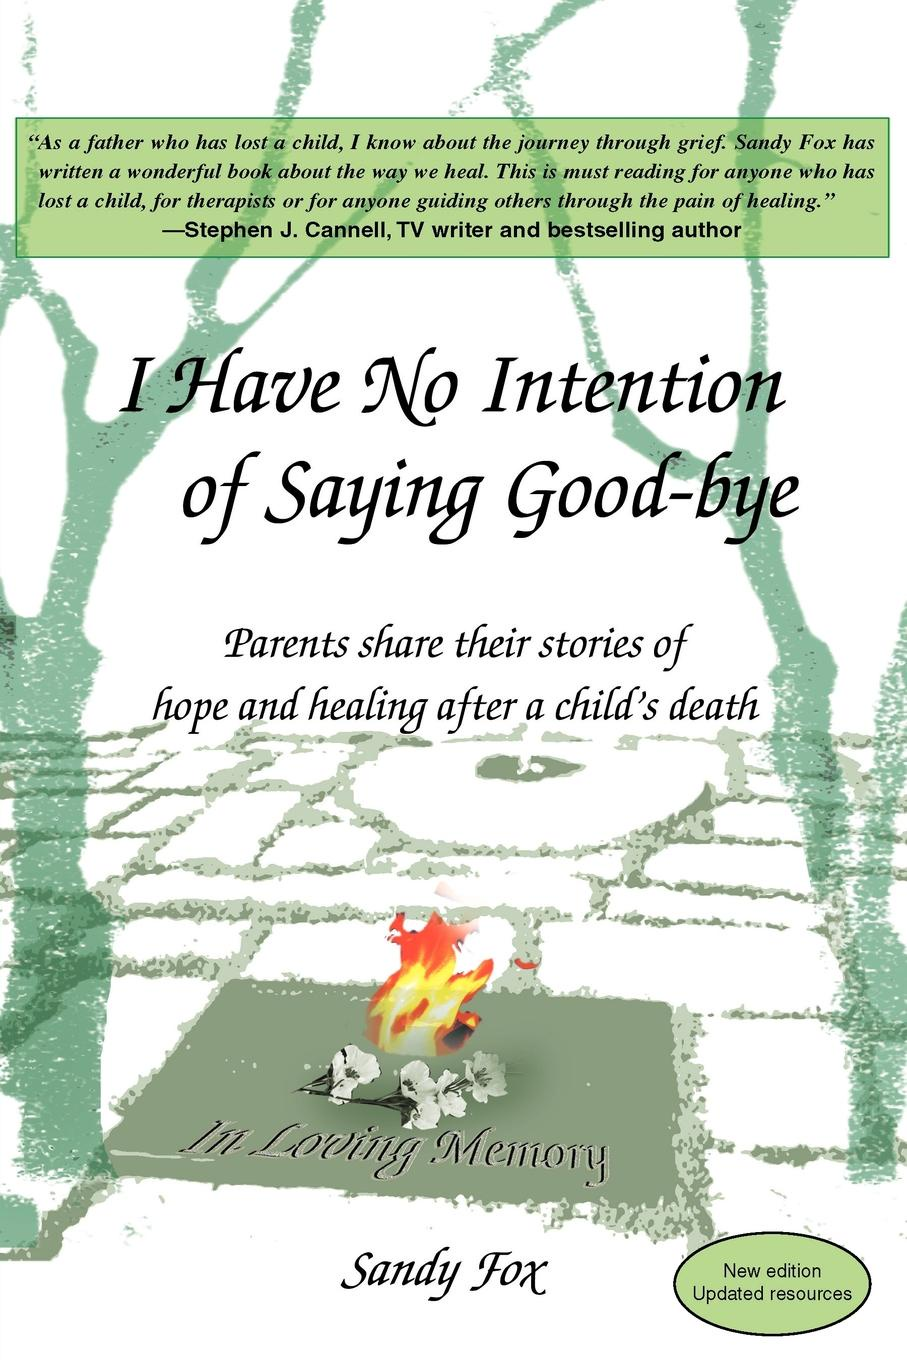 Sandy Fox I Have No Intention of Saying Good-Bye. Parents Share Their Stories of Hope and Healing After a Child's Death finding ways of saying no